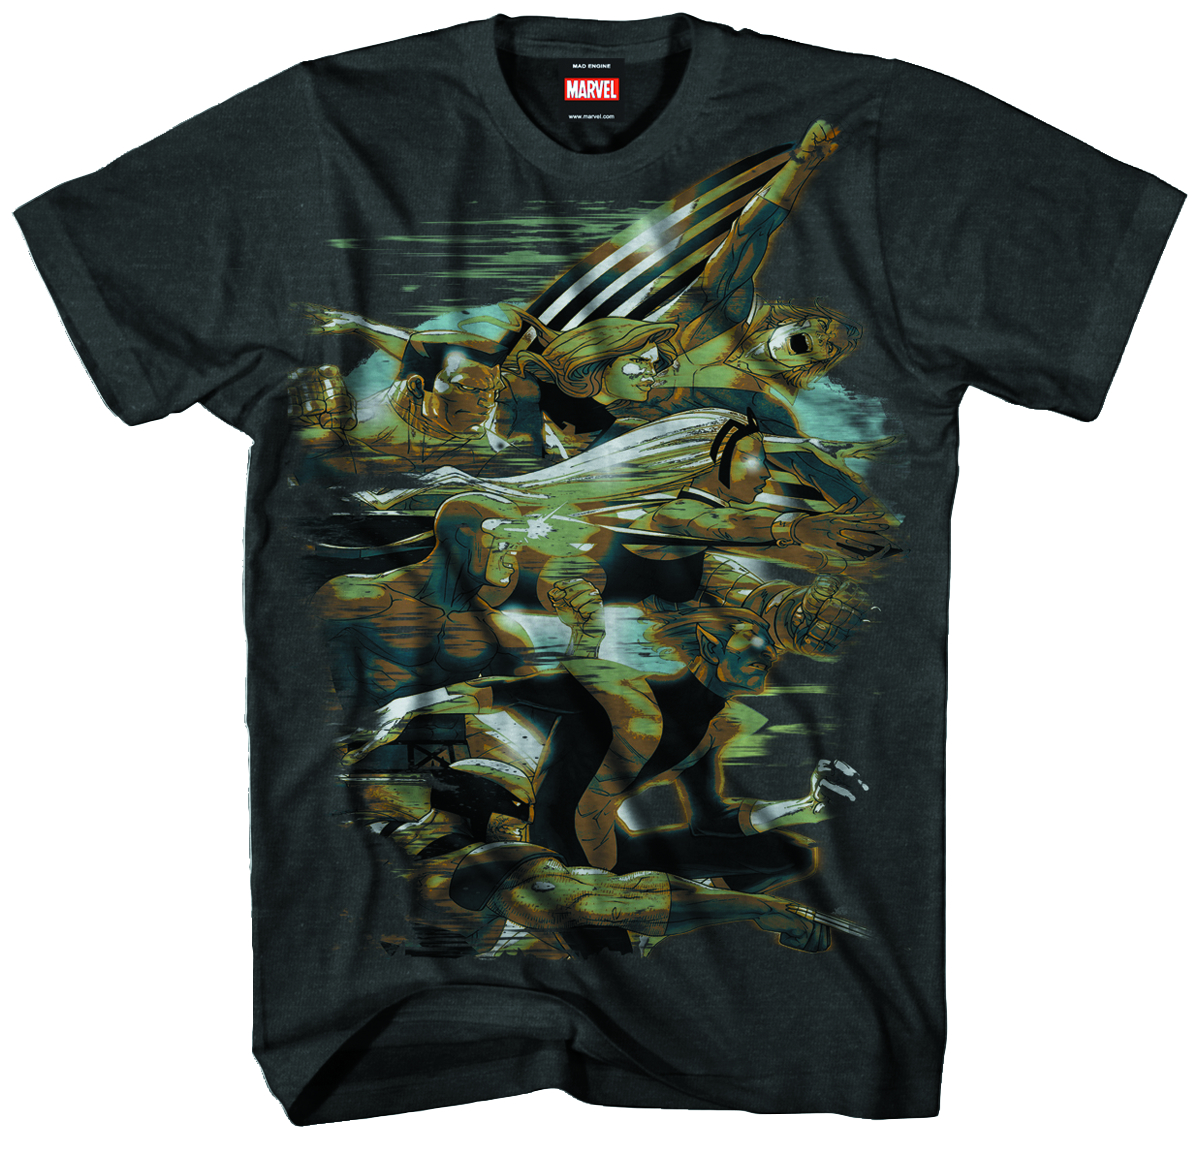 X-MEN FORWARD PX CHARCOAL HEATHER T/S LG